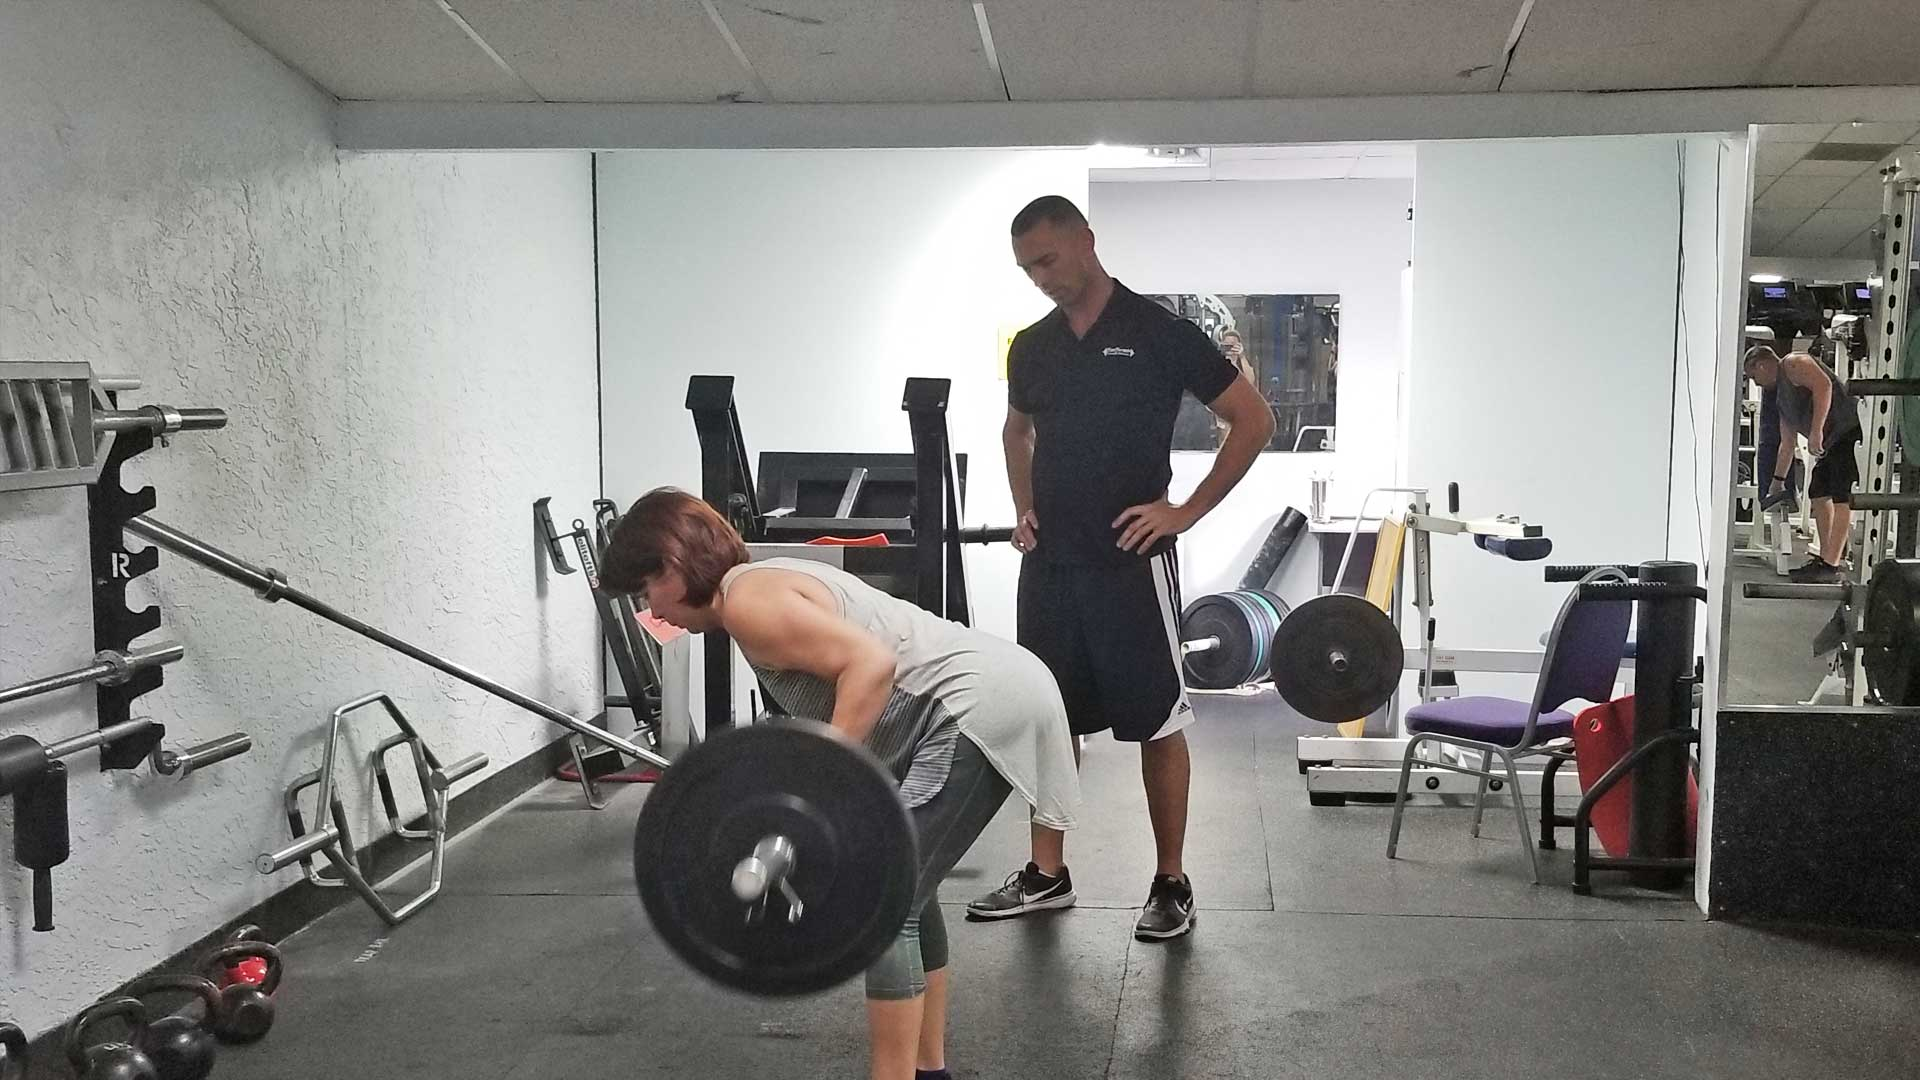 Personal training instruction on how to do a barbell row in Apollo Beach.